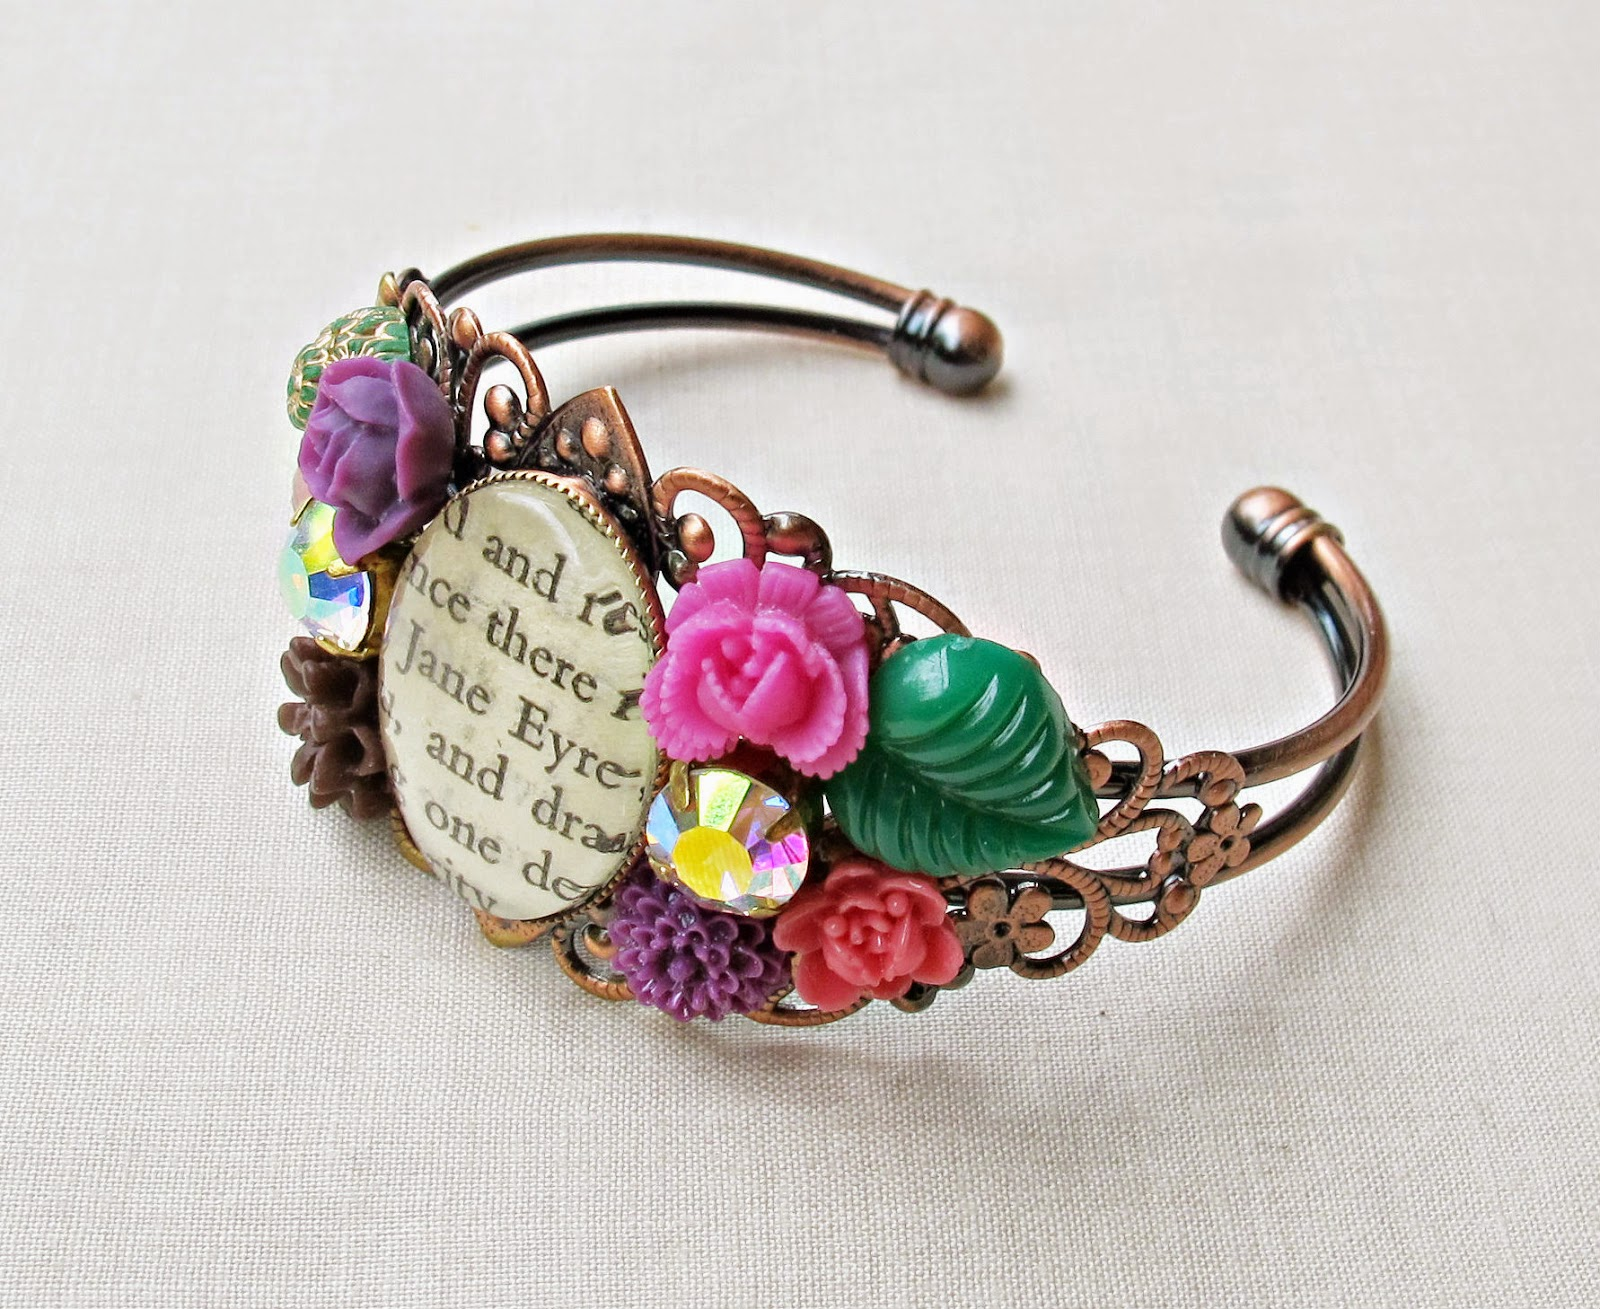 image jane eyre cuff bangle two cheeky monkeys vintage rhinestones floral cabochons pink purple green copper